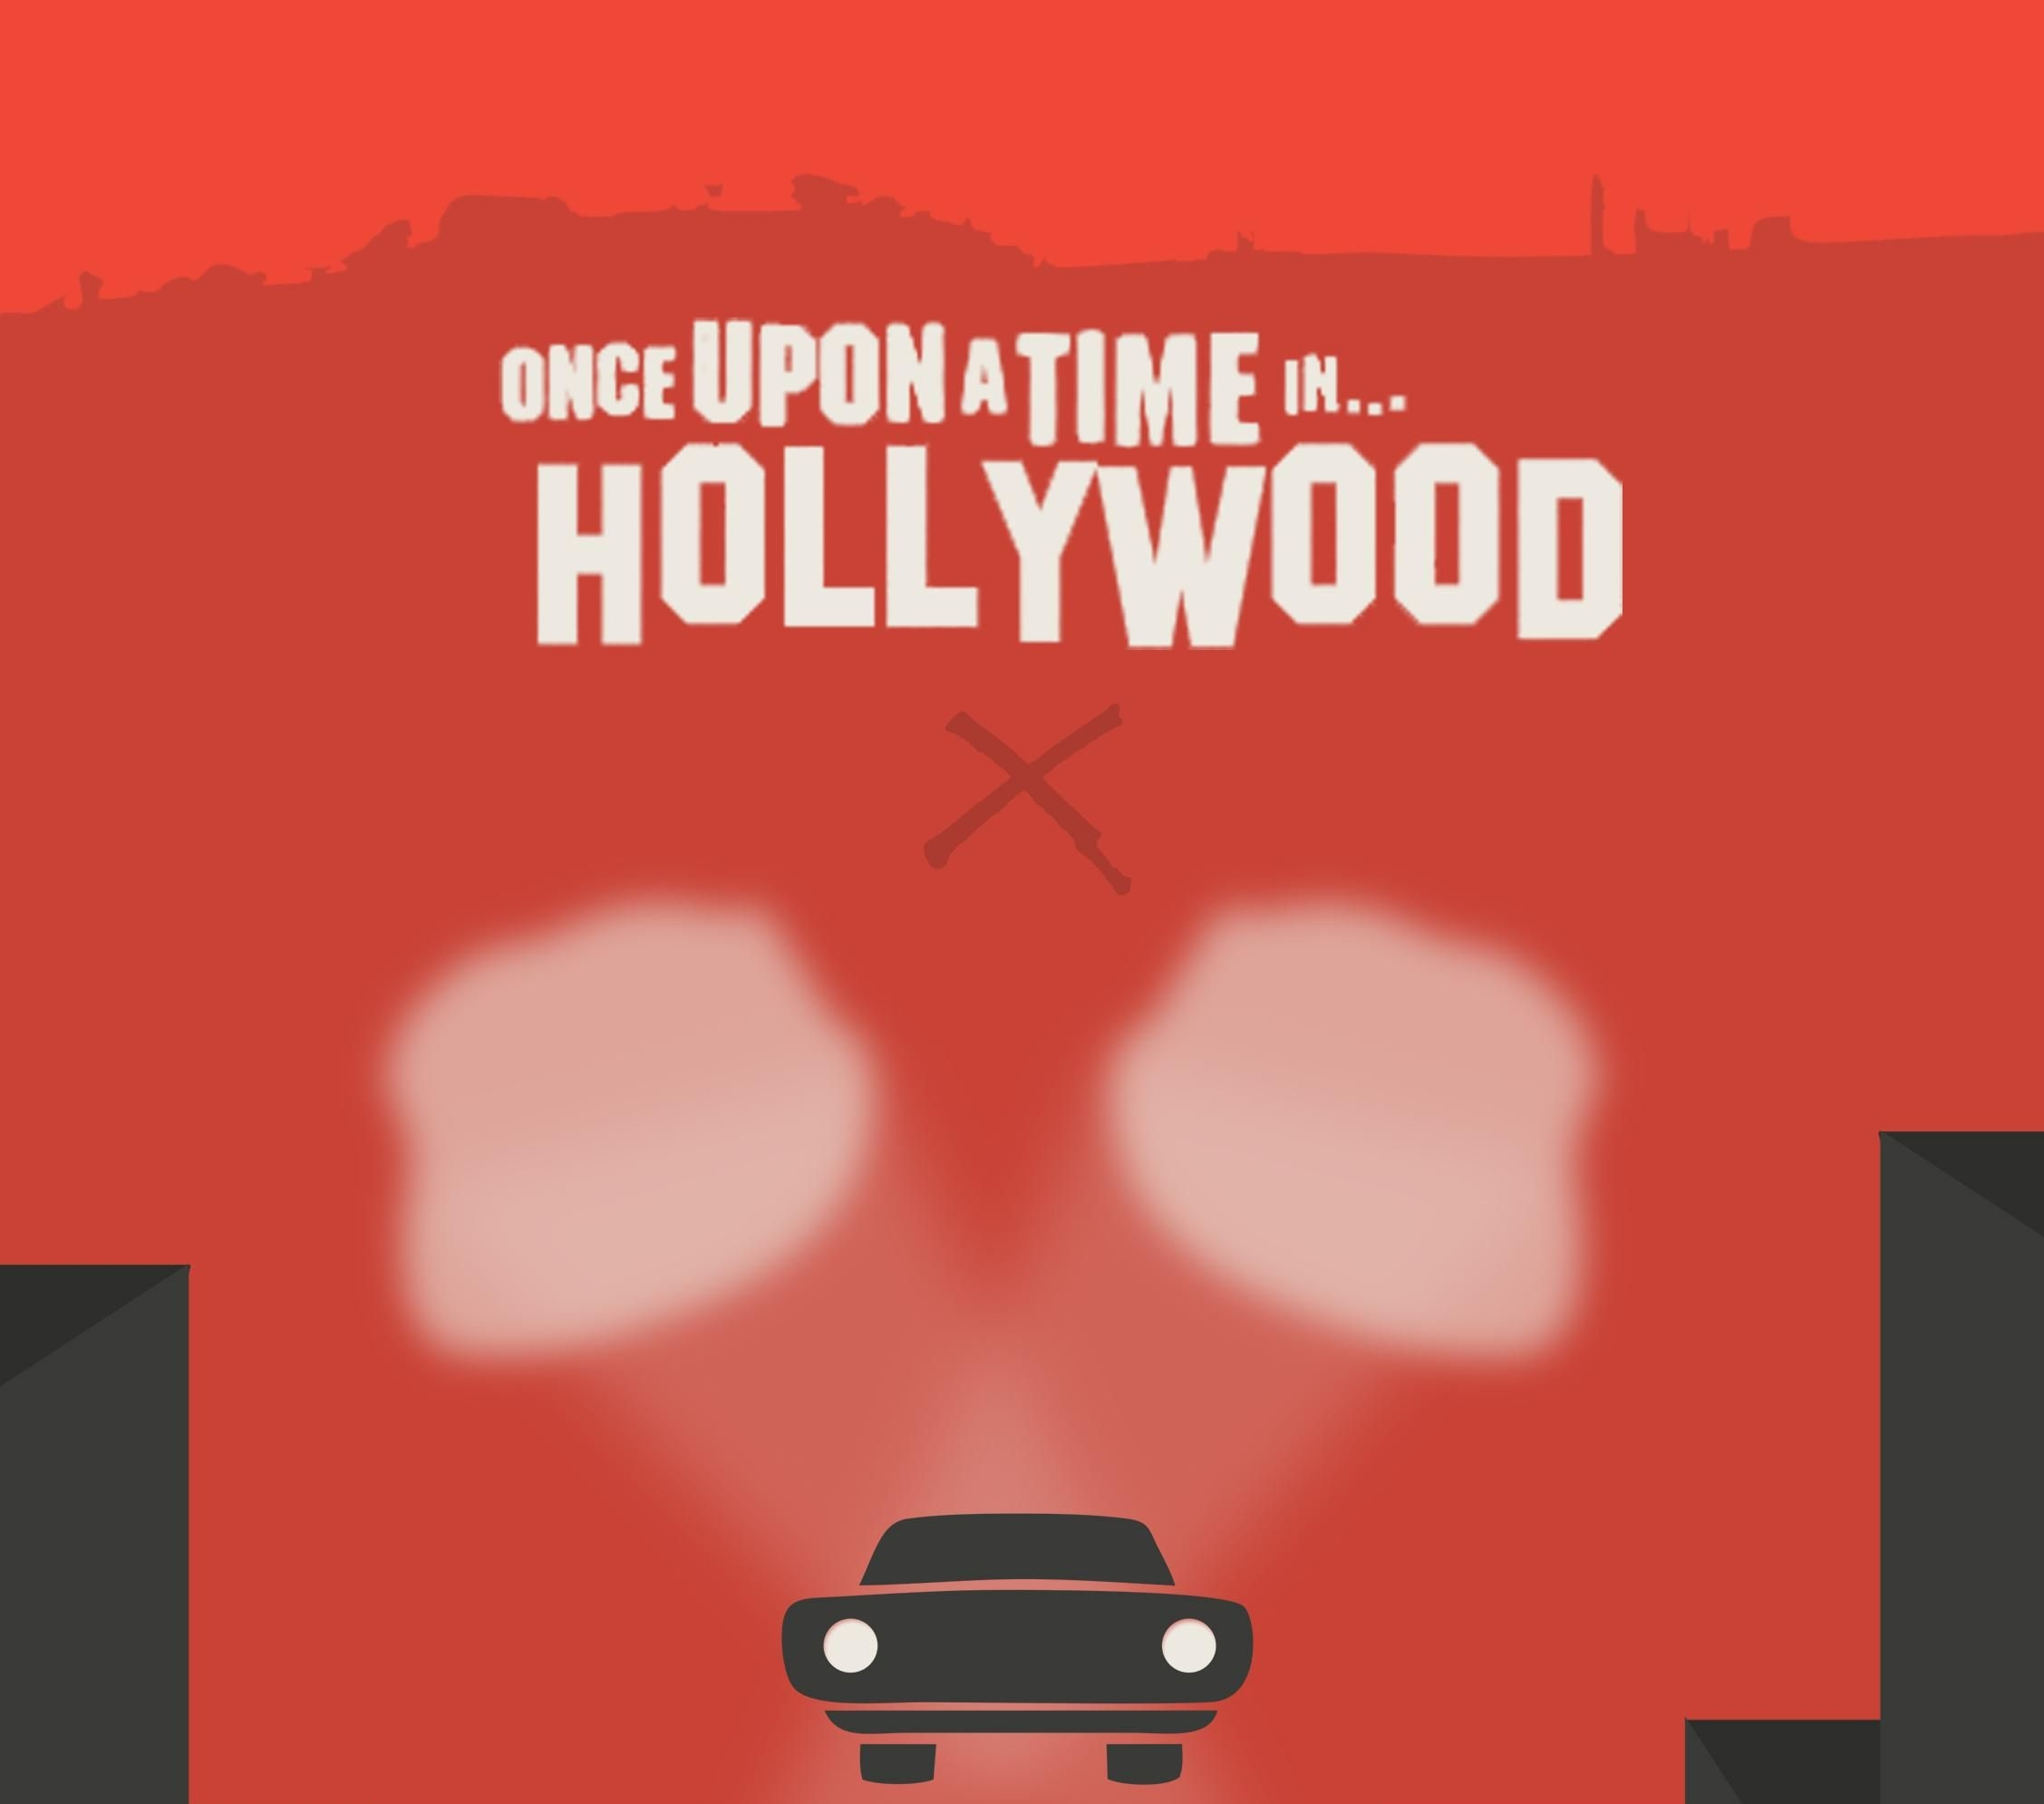 Once Upon A Time In Hollywood Hd Wallpaper Background Image